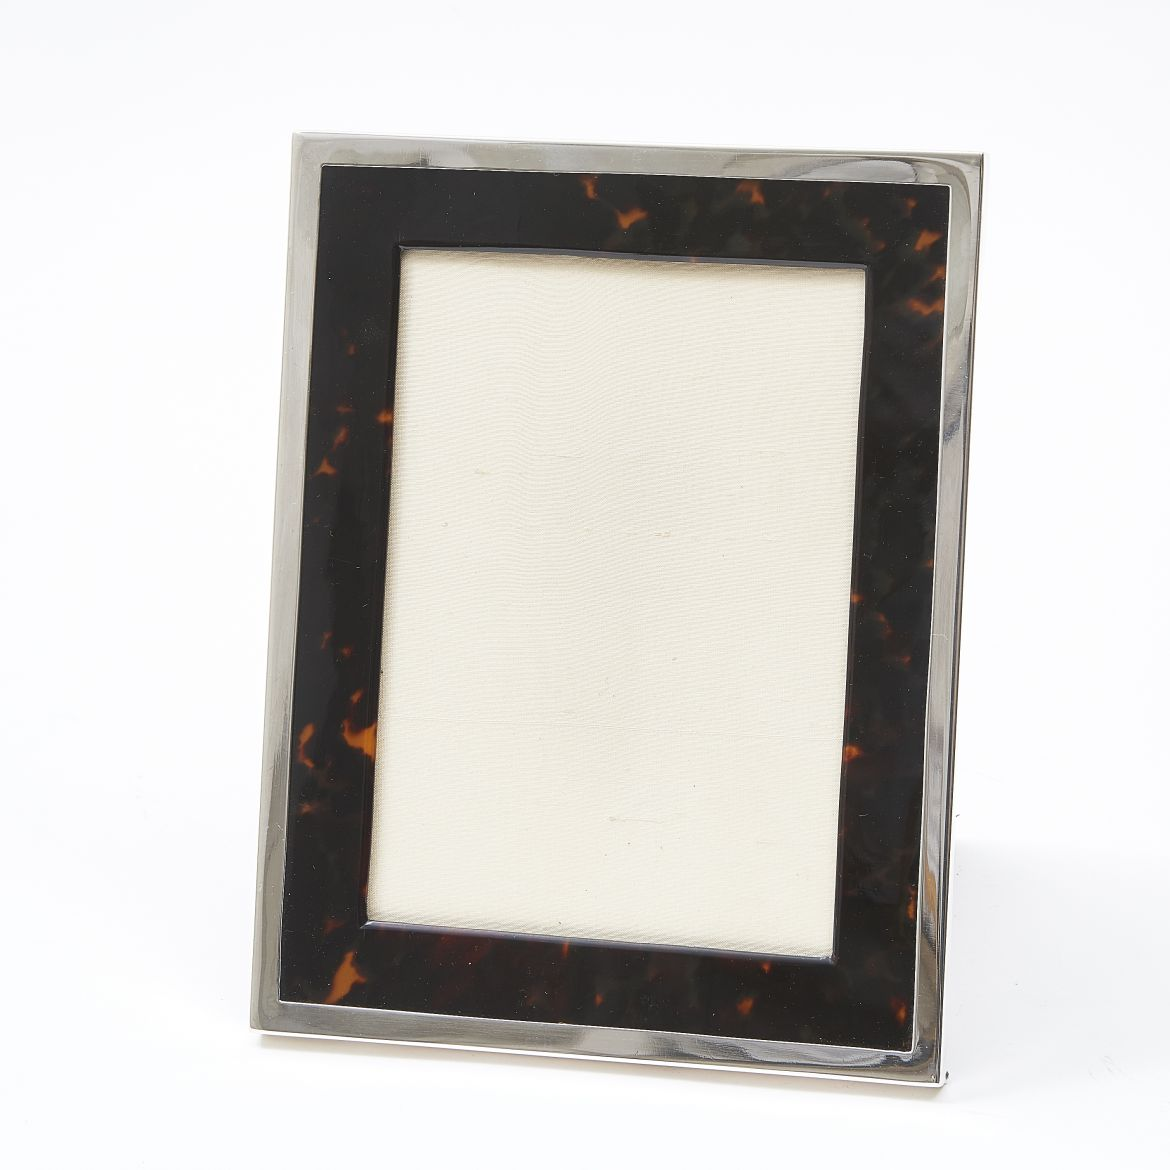 English Silver and Tortoiseshell Frame